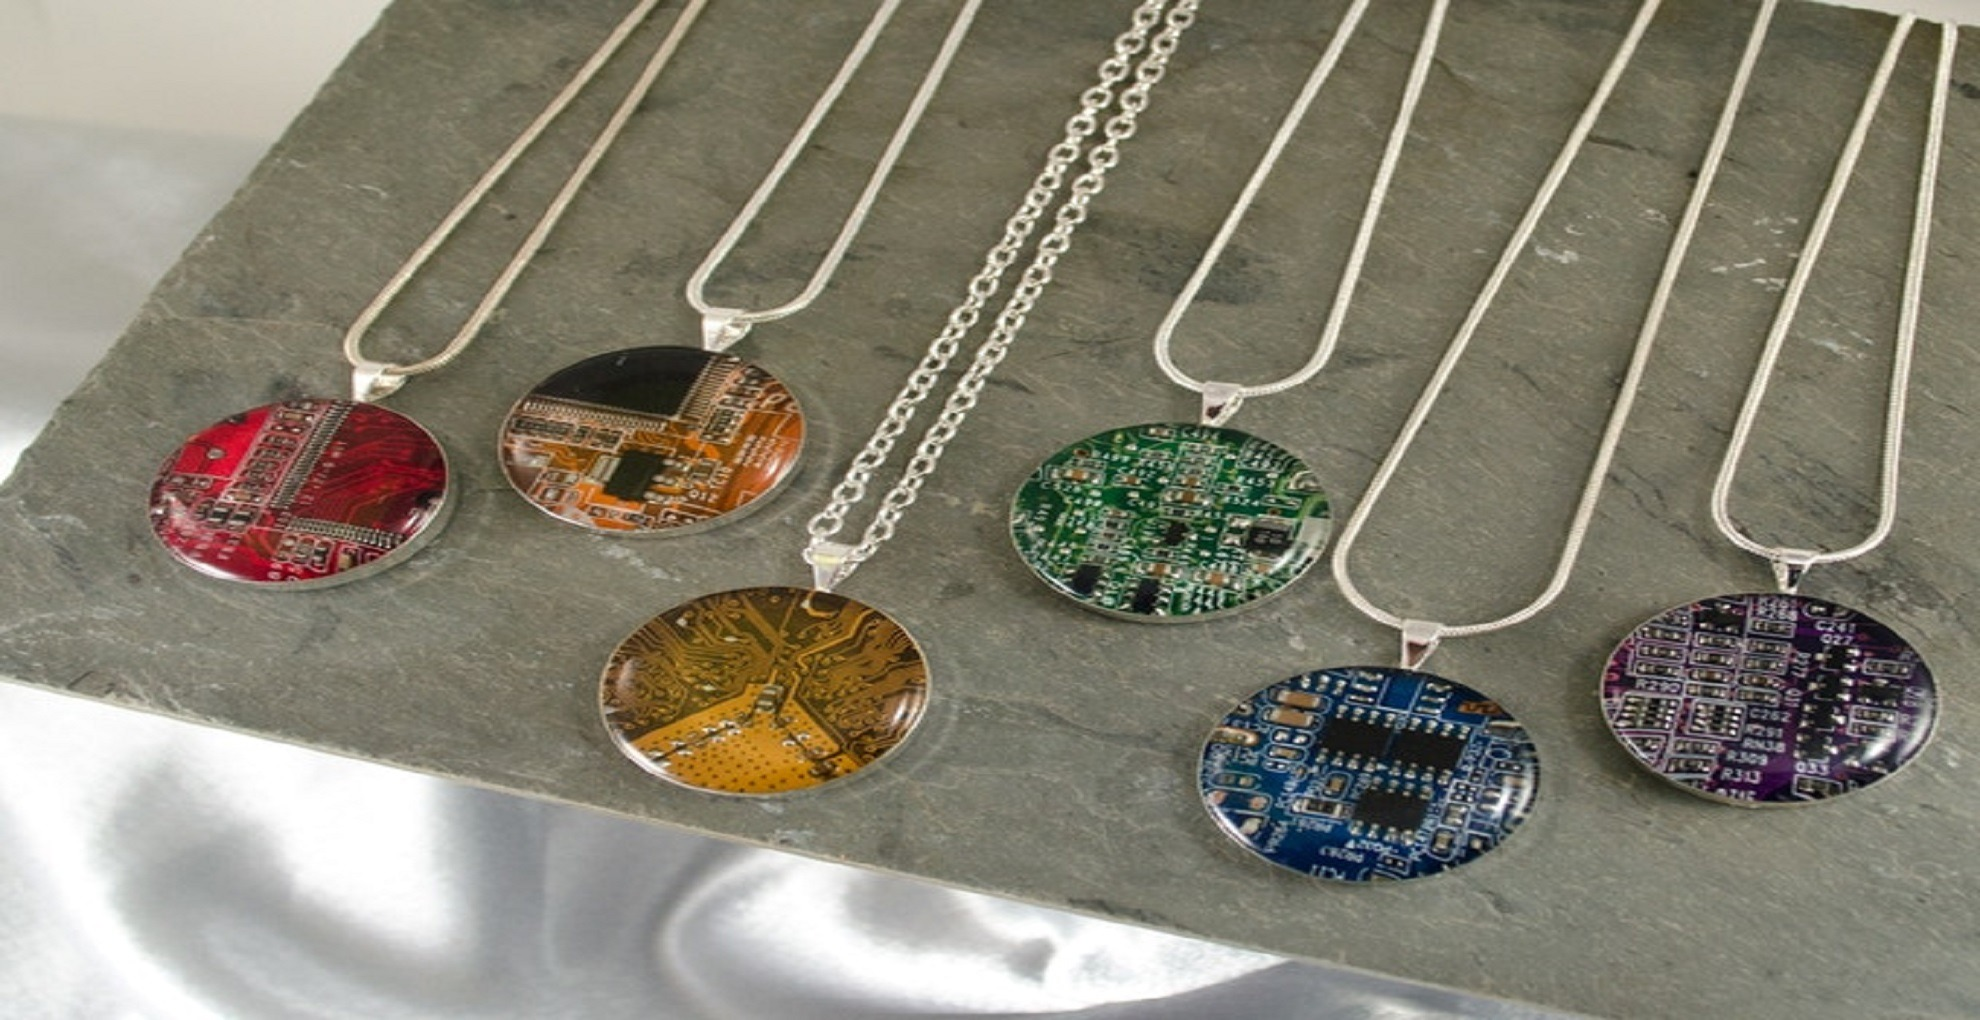 Printed Circuit Boards Upcycled as Beautiful Jewelry